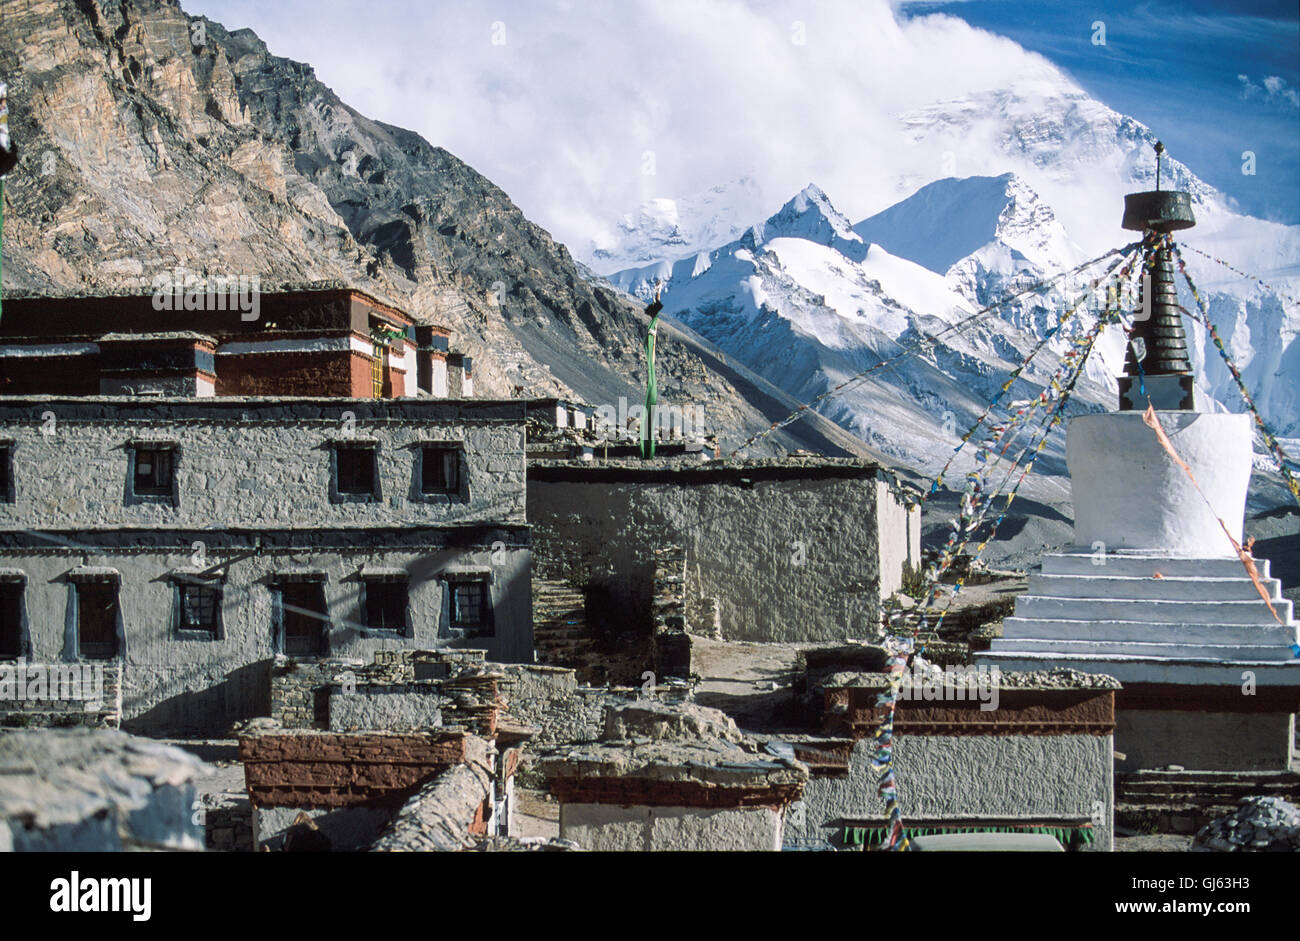 Rongbuk  monastery, which  featured  in  Michael  Palin's  'Himalaya'  tv  series  with  North  Face - Stock Image